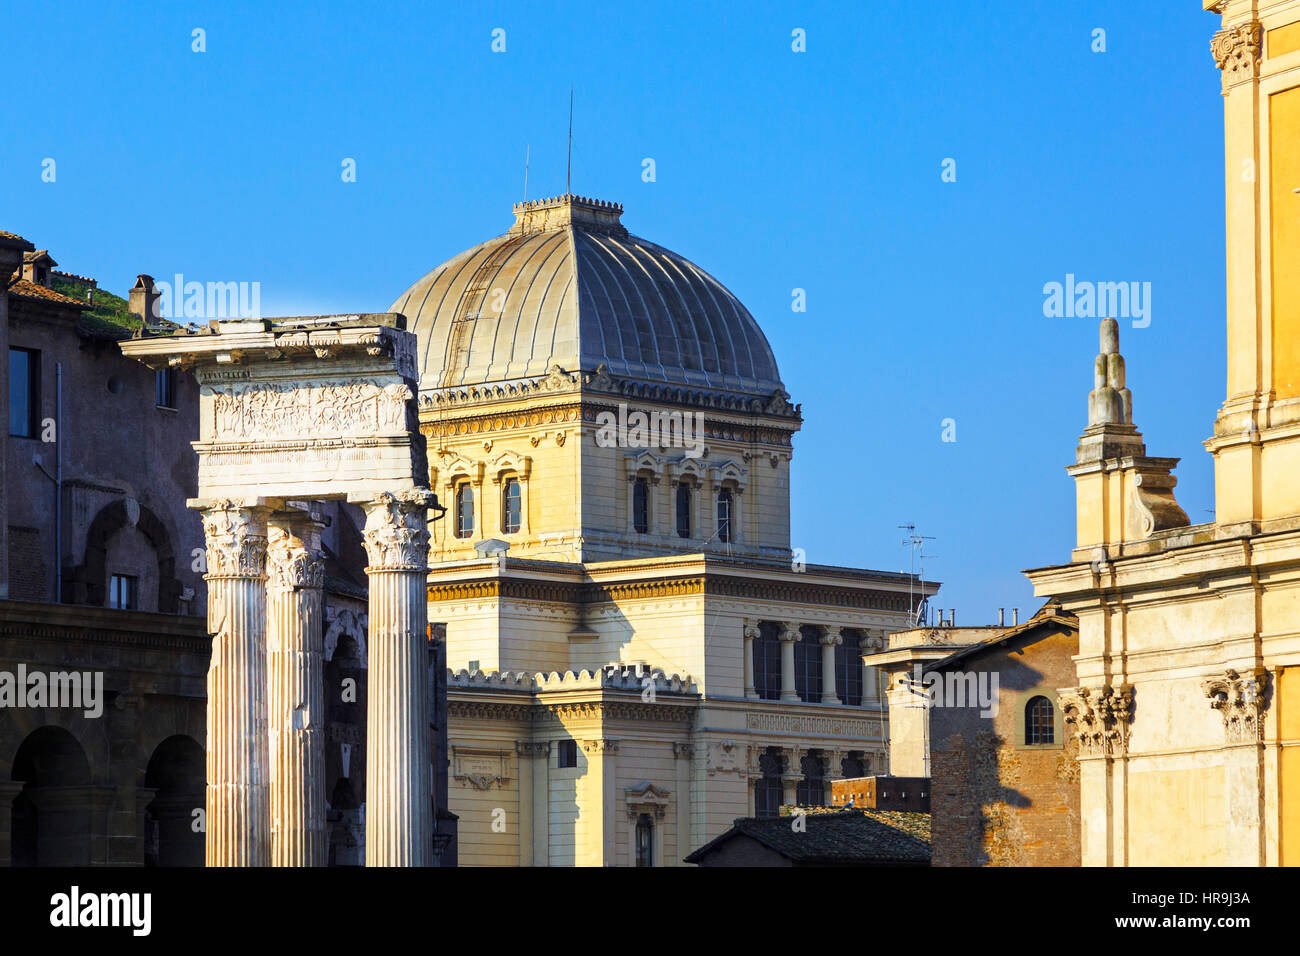 Building details with old Roman pillars on Via San Marco, Rome, Italy - Stock Image